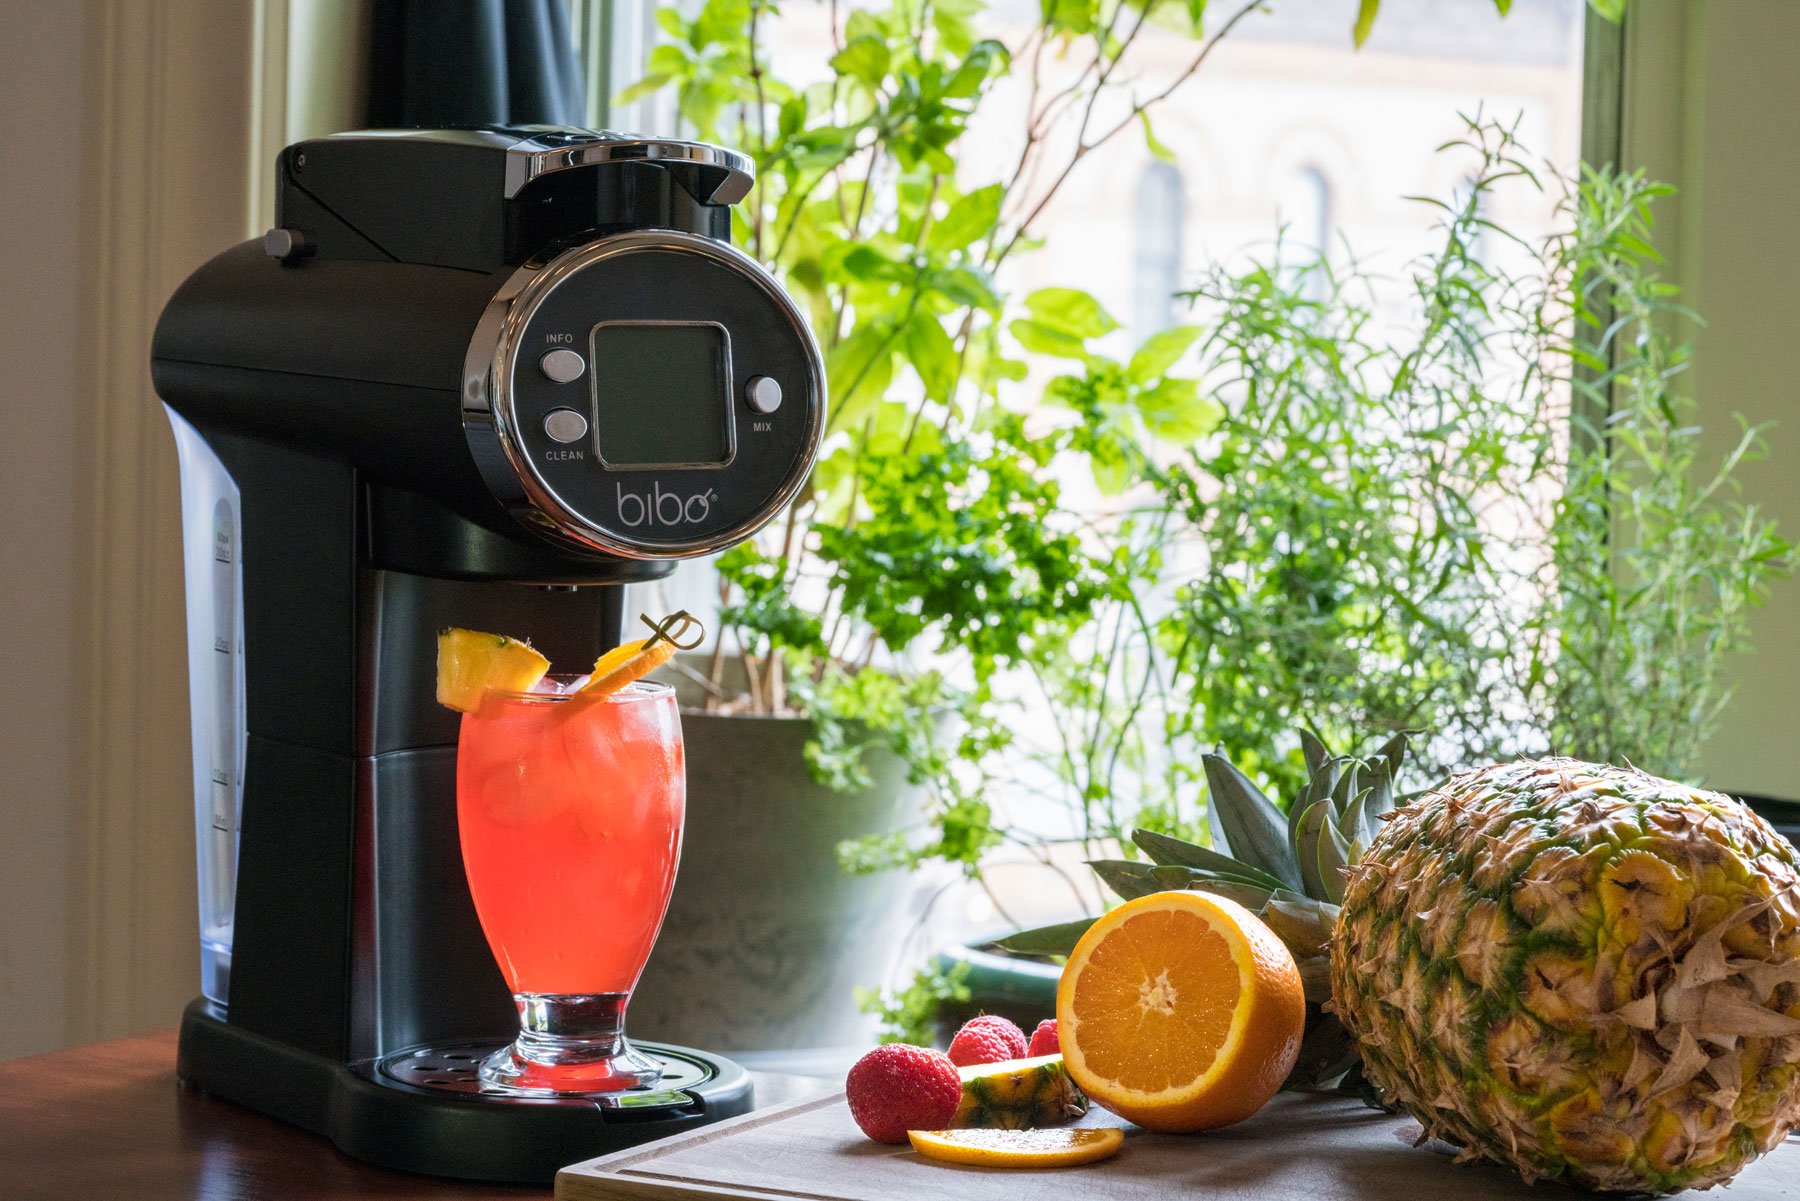 This Robot Bartender Makes Your Favorite Cocktails At Home